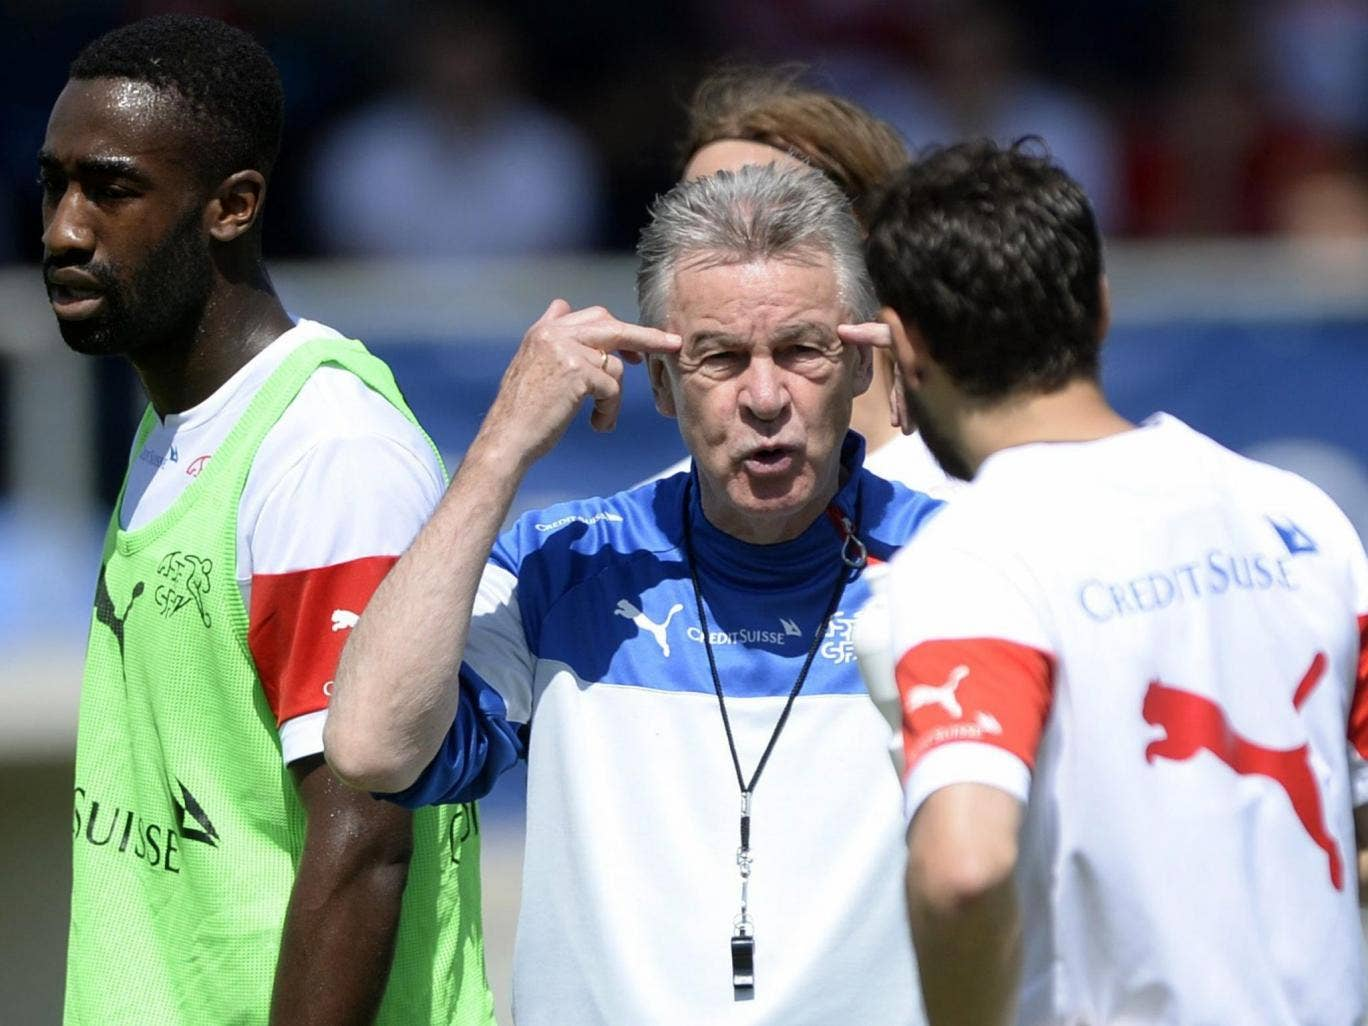 The experienced Switerland coach, Ottmar Hitzfeld, believes his team has the ability to qualify out of the group stage in Brazil